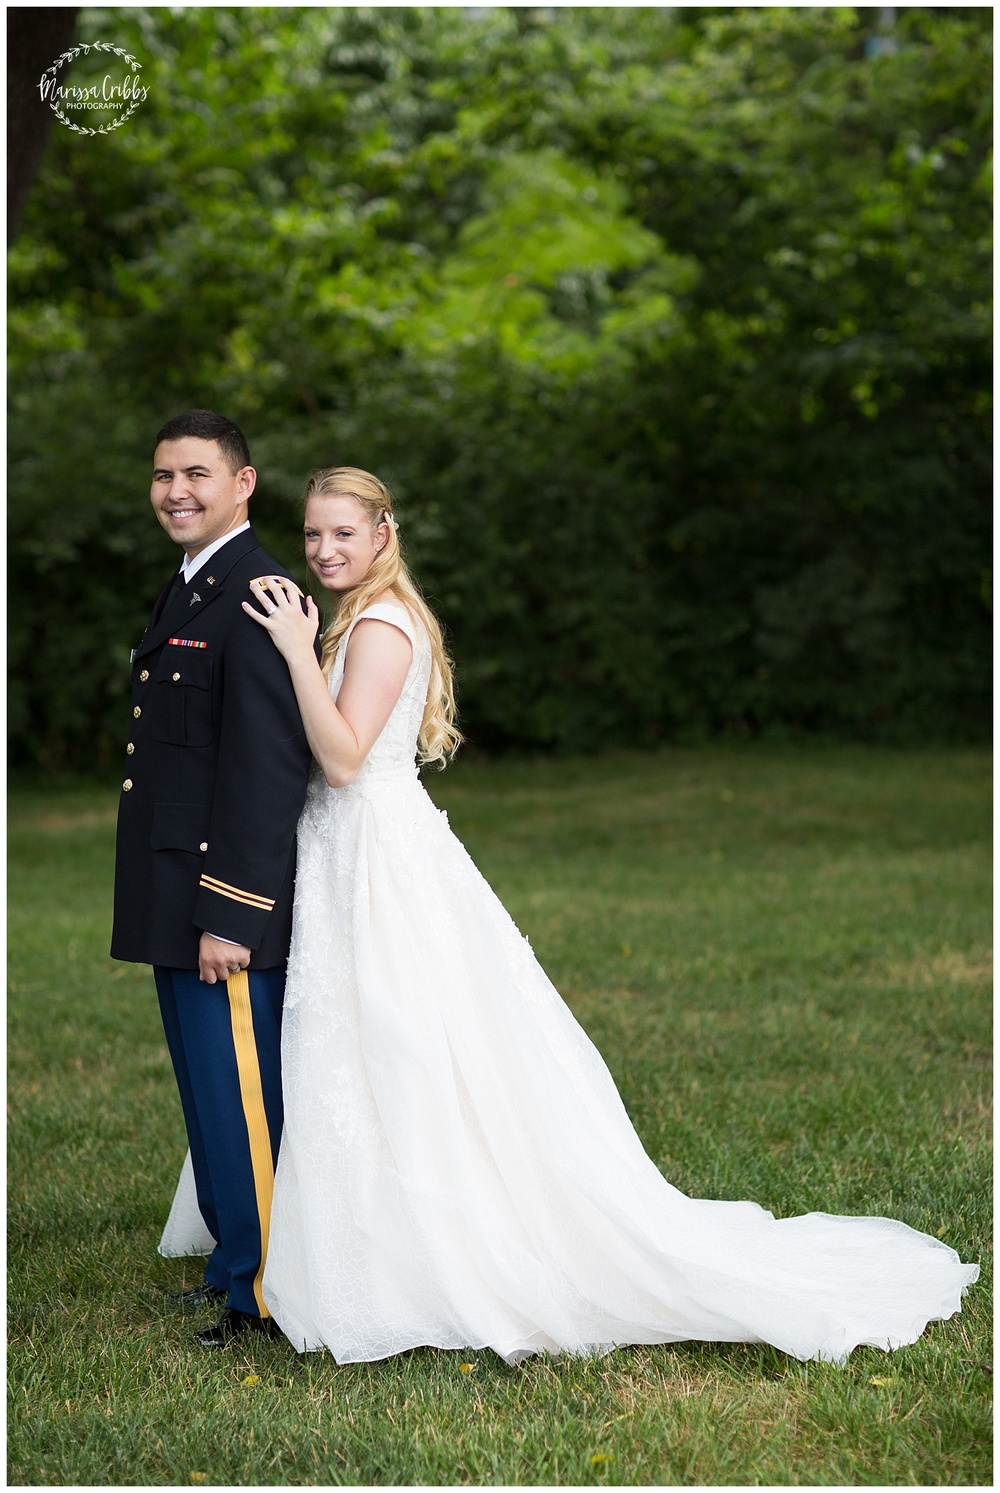 Jimenez Wedding | Marissa Cribbs Photography_0285.jpg